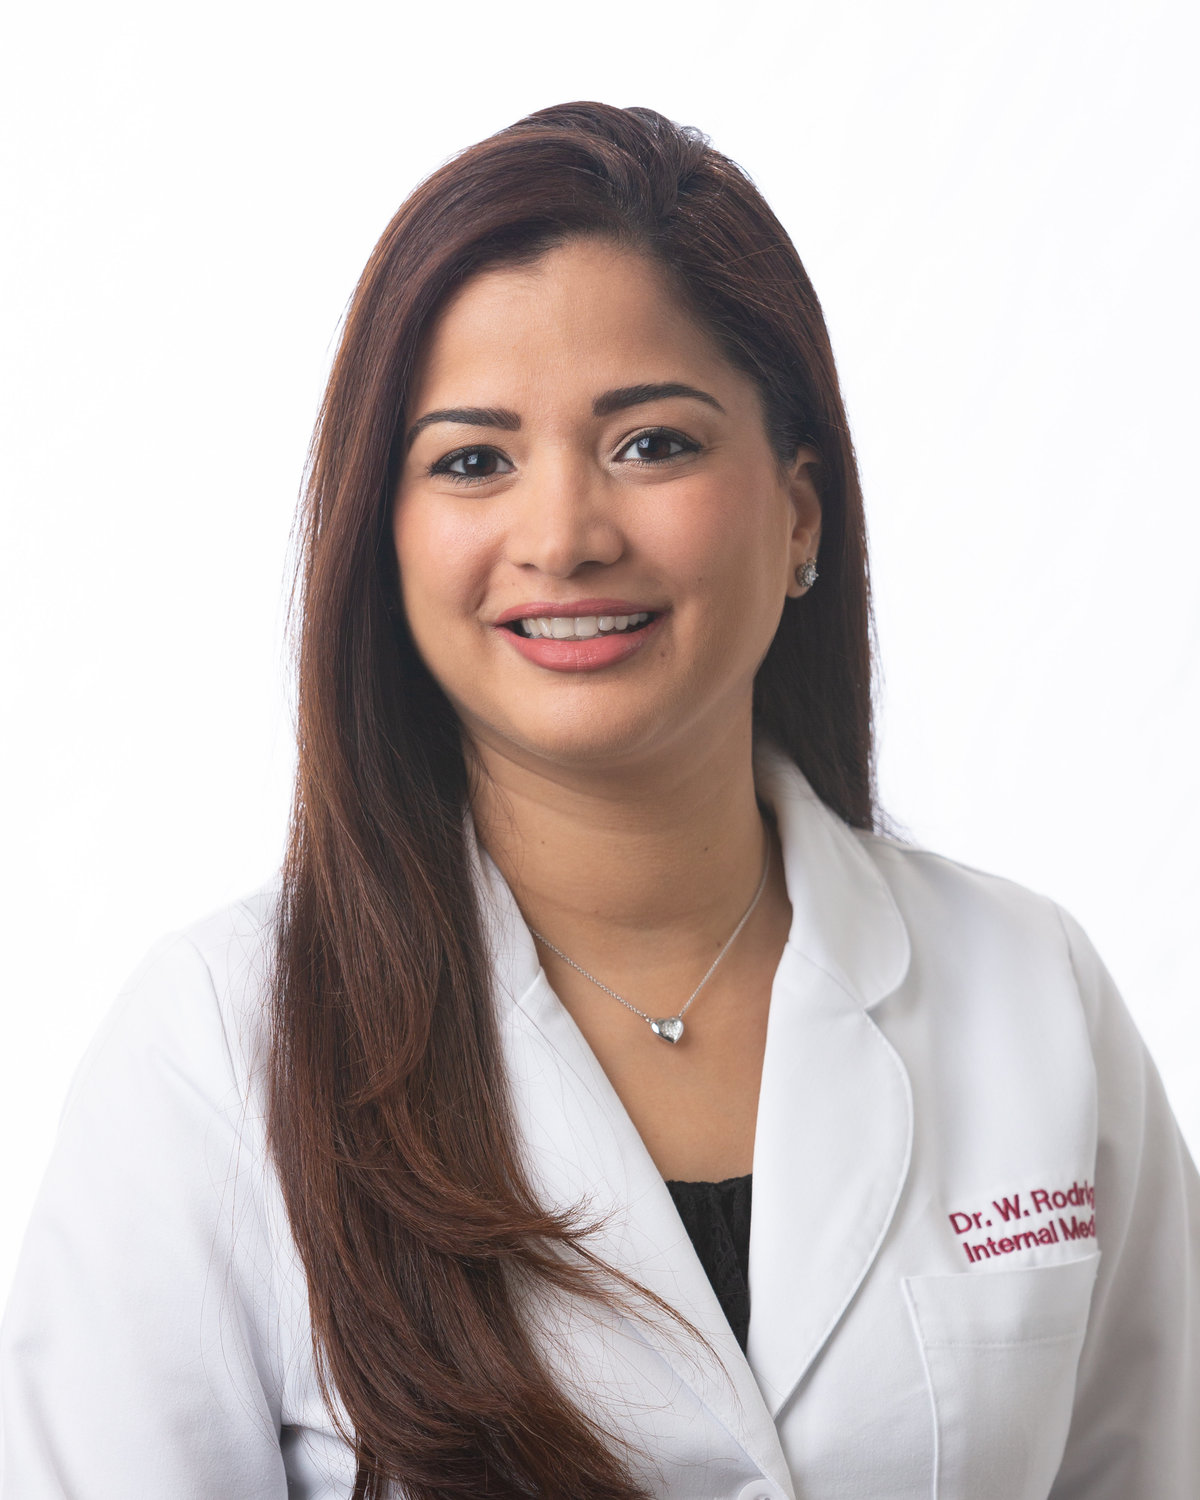 Portrait of Wilsania Rodriguez for her medical practice.